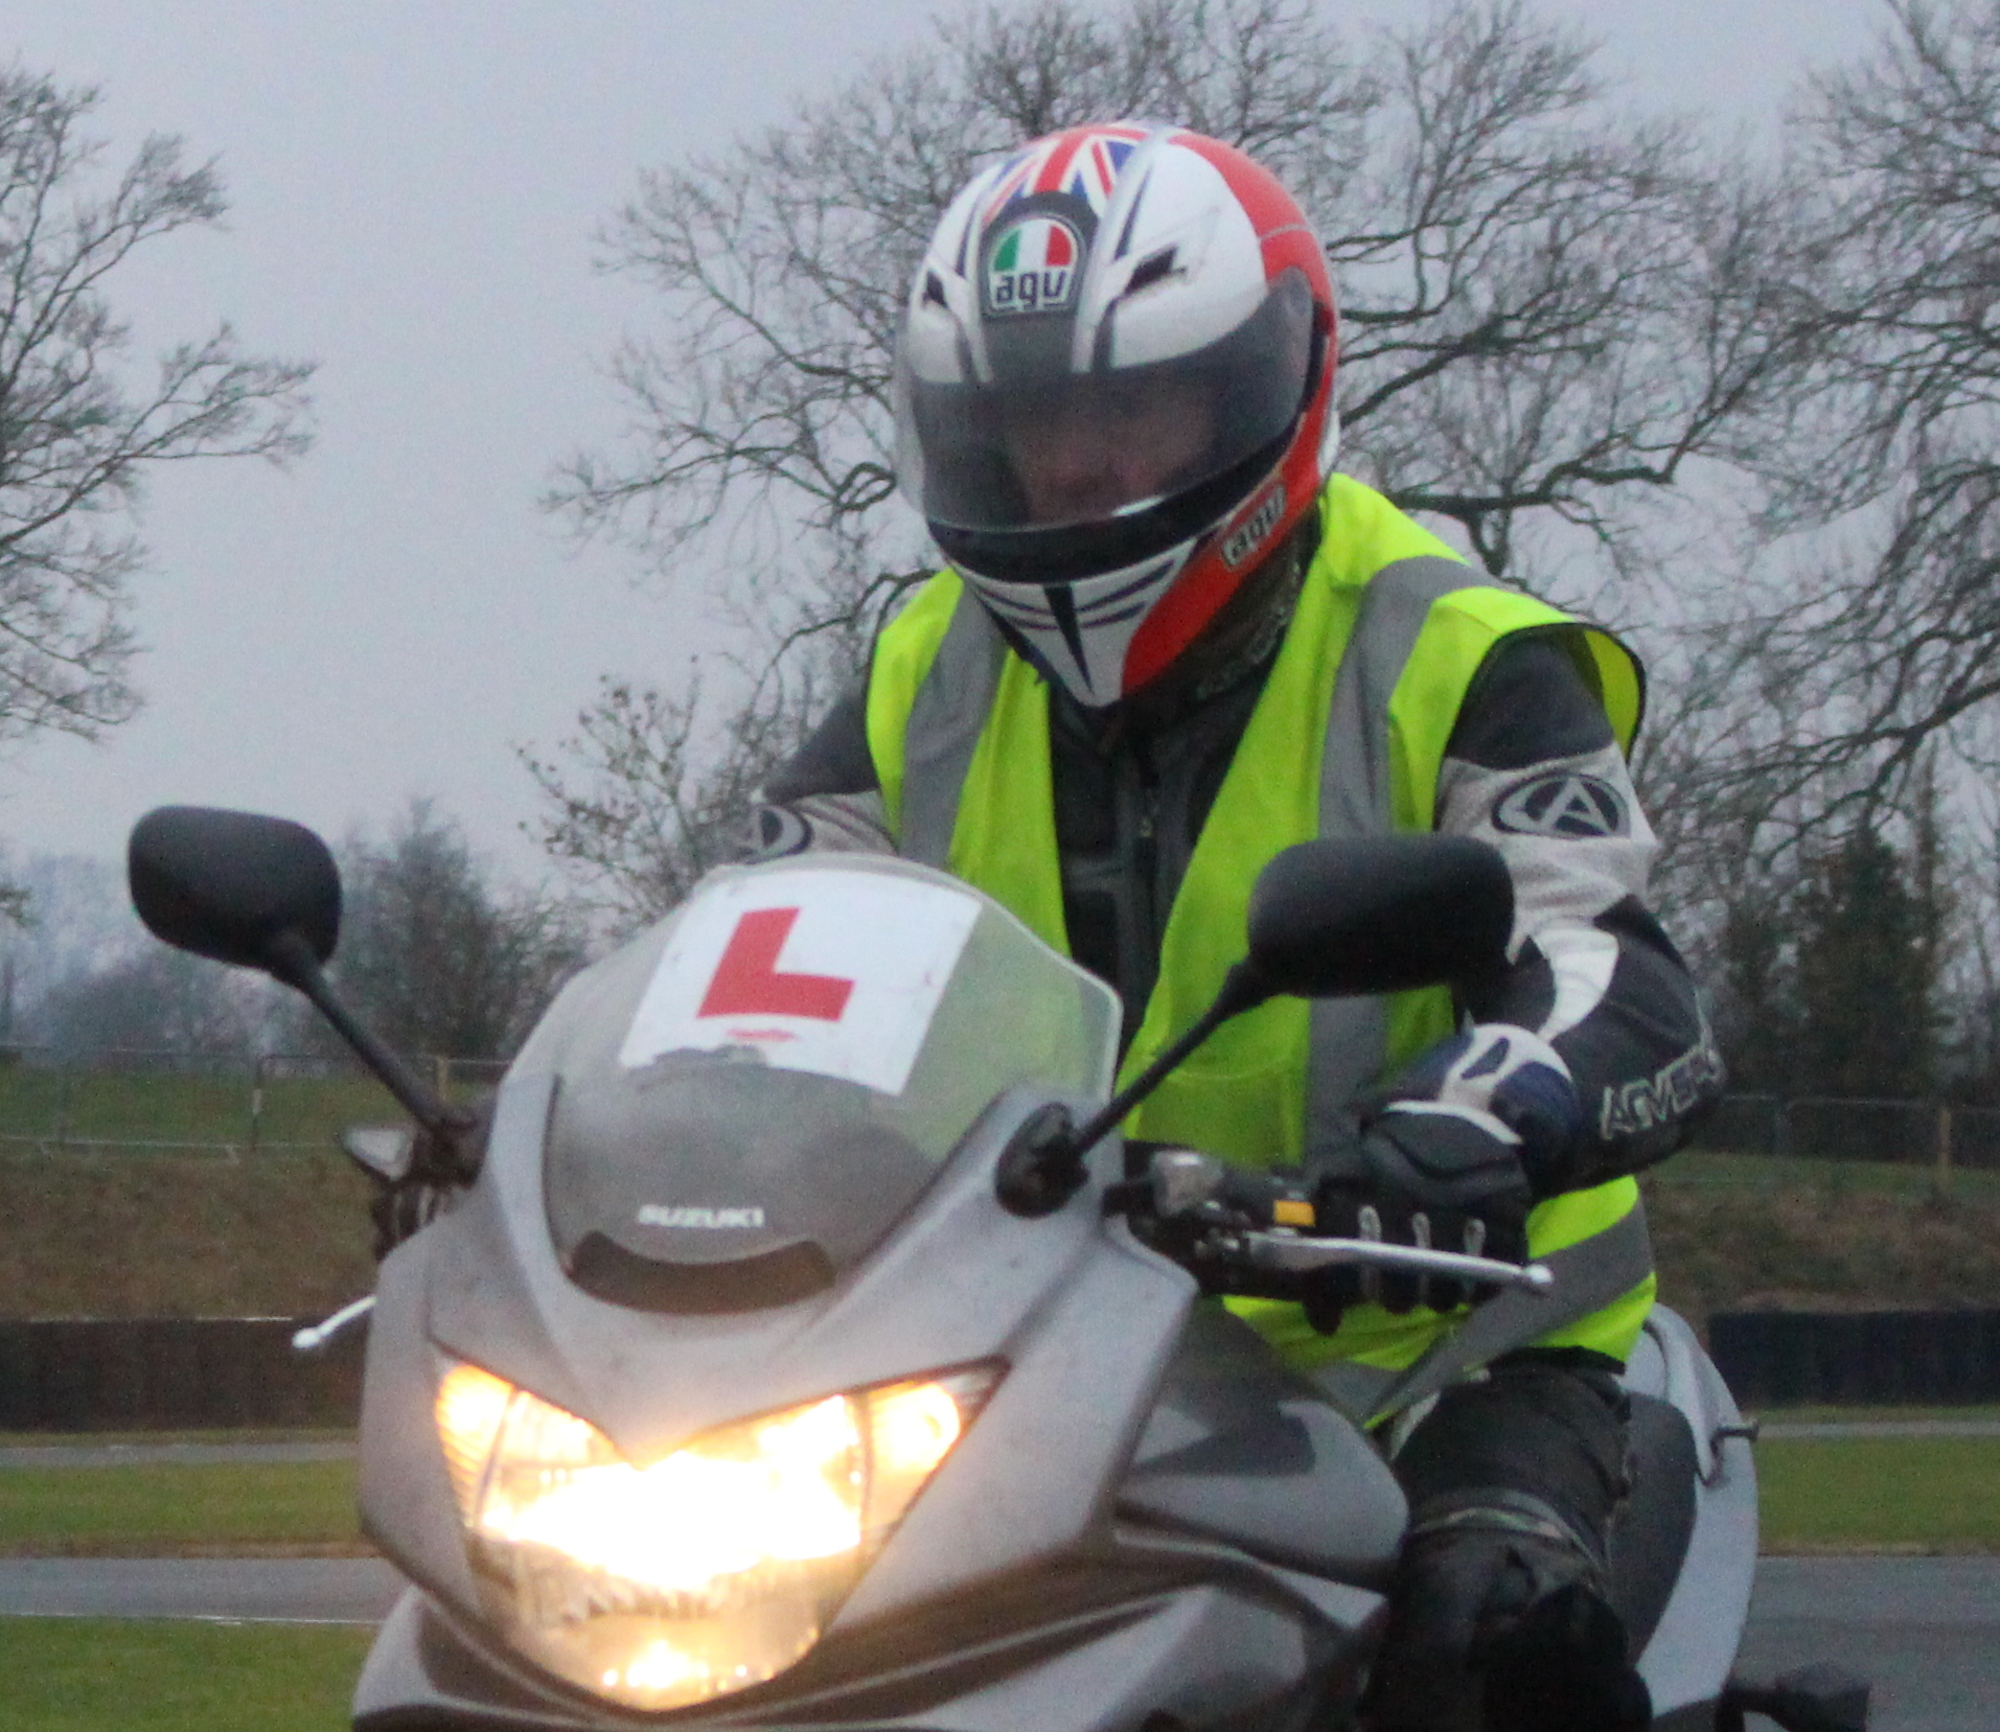 CBT motorcycle test